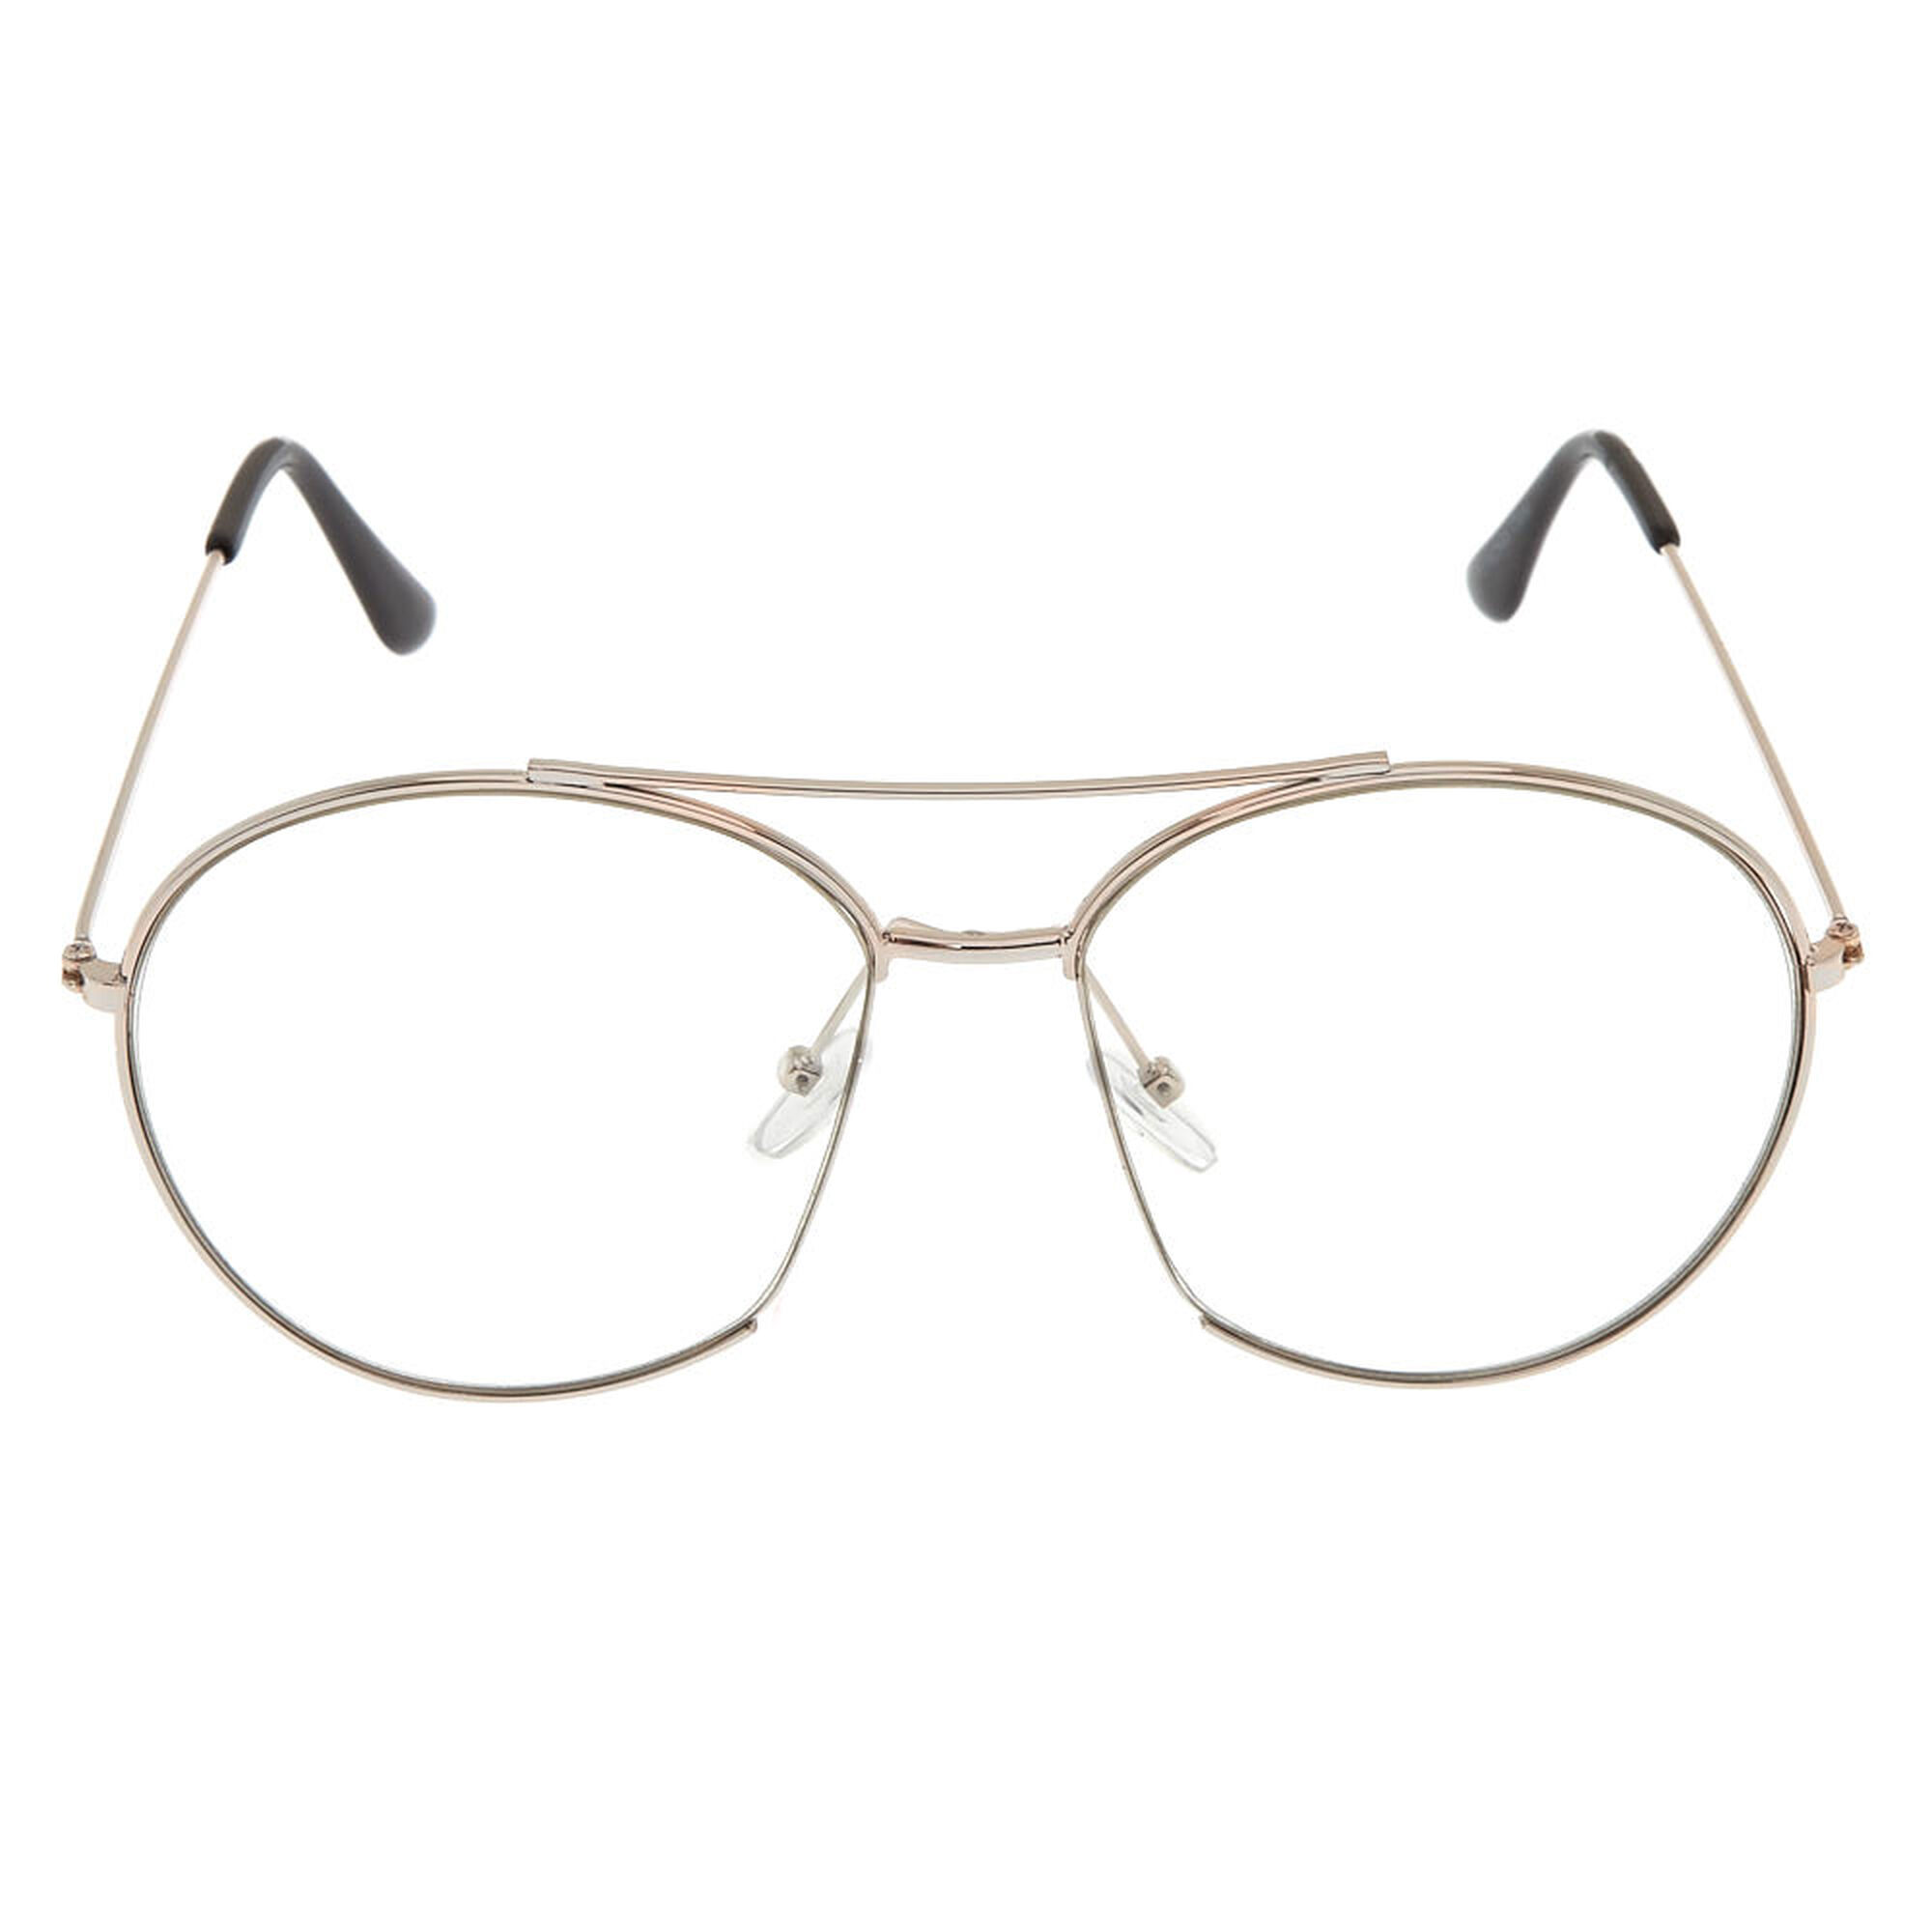 Silver Oversized Aviator Frames | Icing US